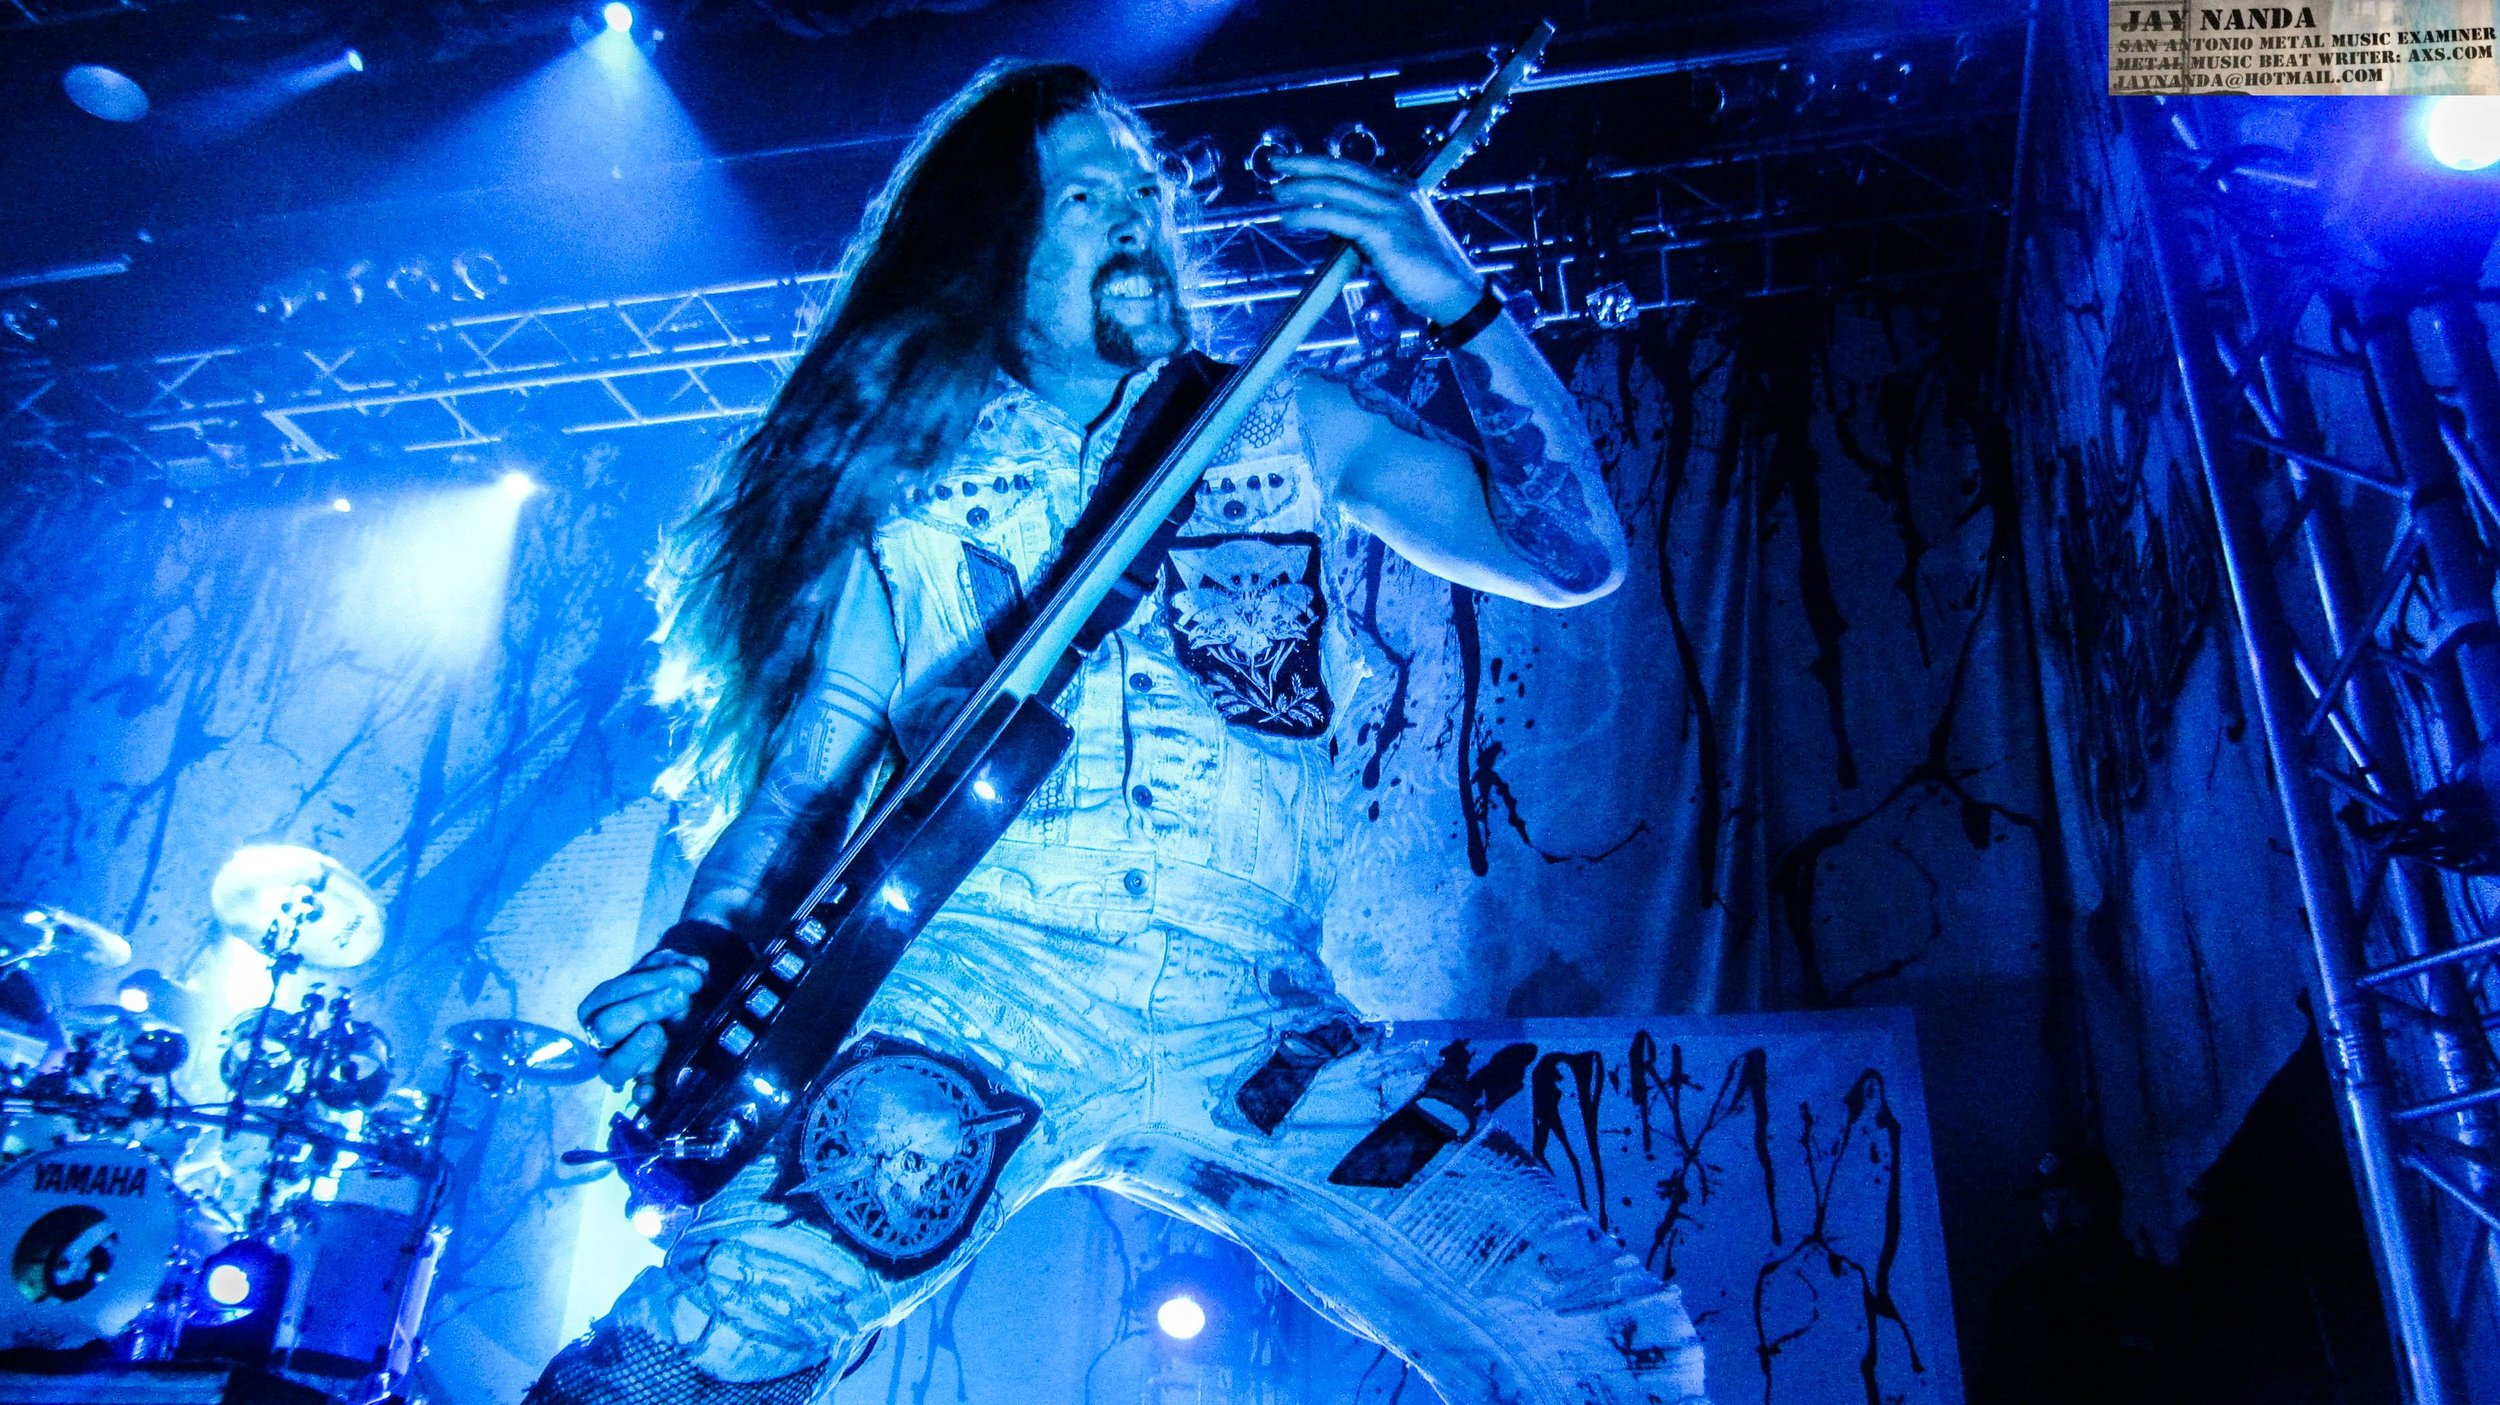 Bassist Jared MacEachern was a picture of intensity as Machine Head headlined the Aztec Theatre on Monday night, only the fourth show into its U.S. tour.